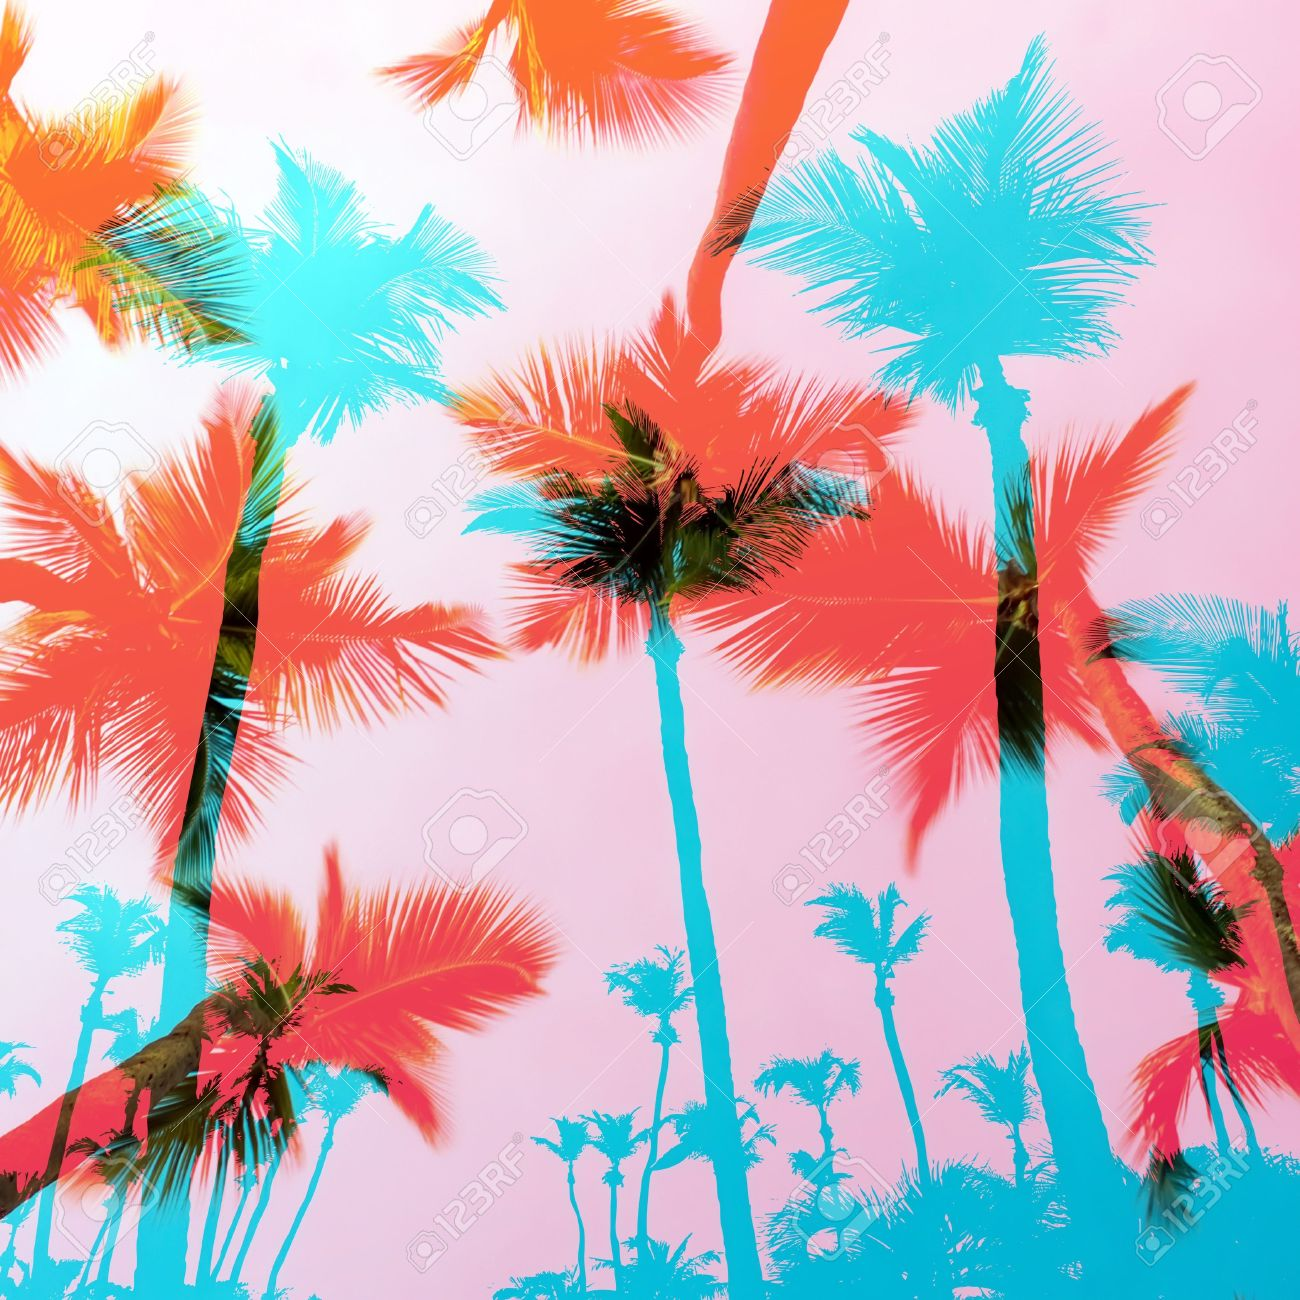 Tropical coconut palm tree silhouettes montage over a tropical sky. Stock Photo - 20982243